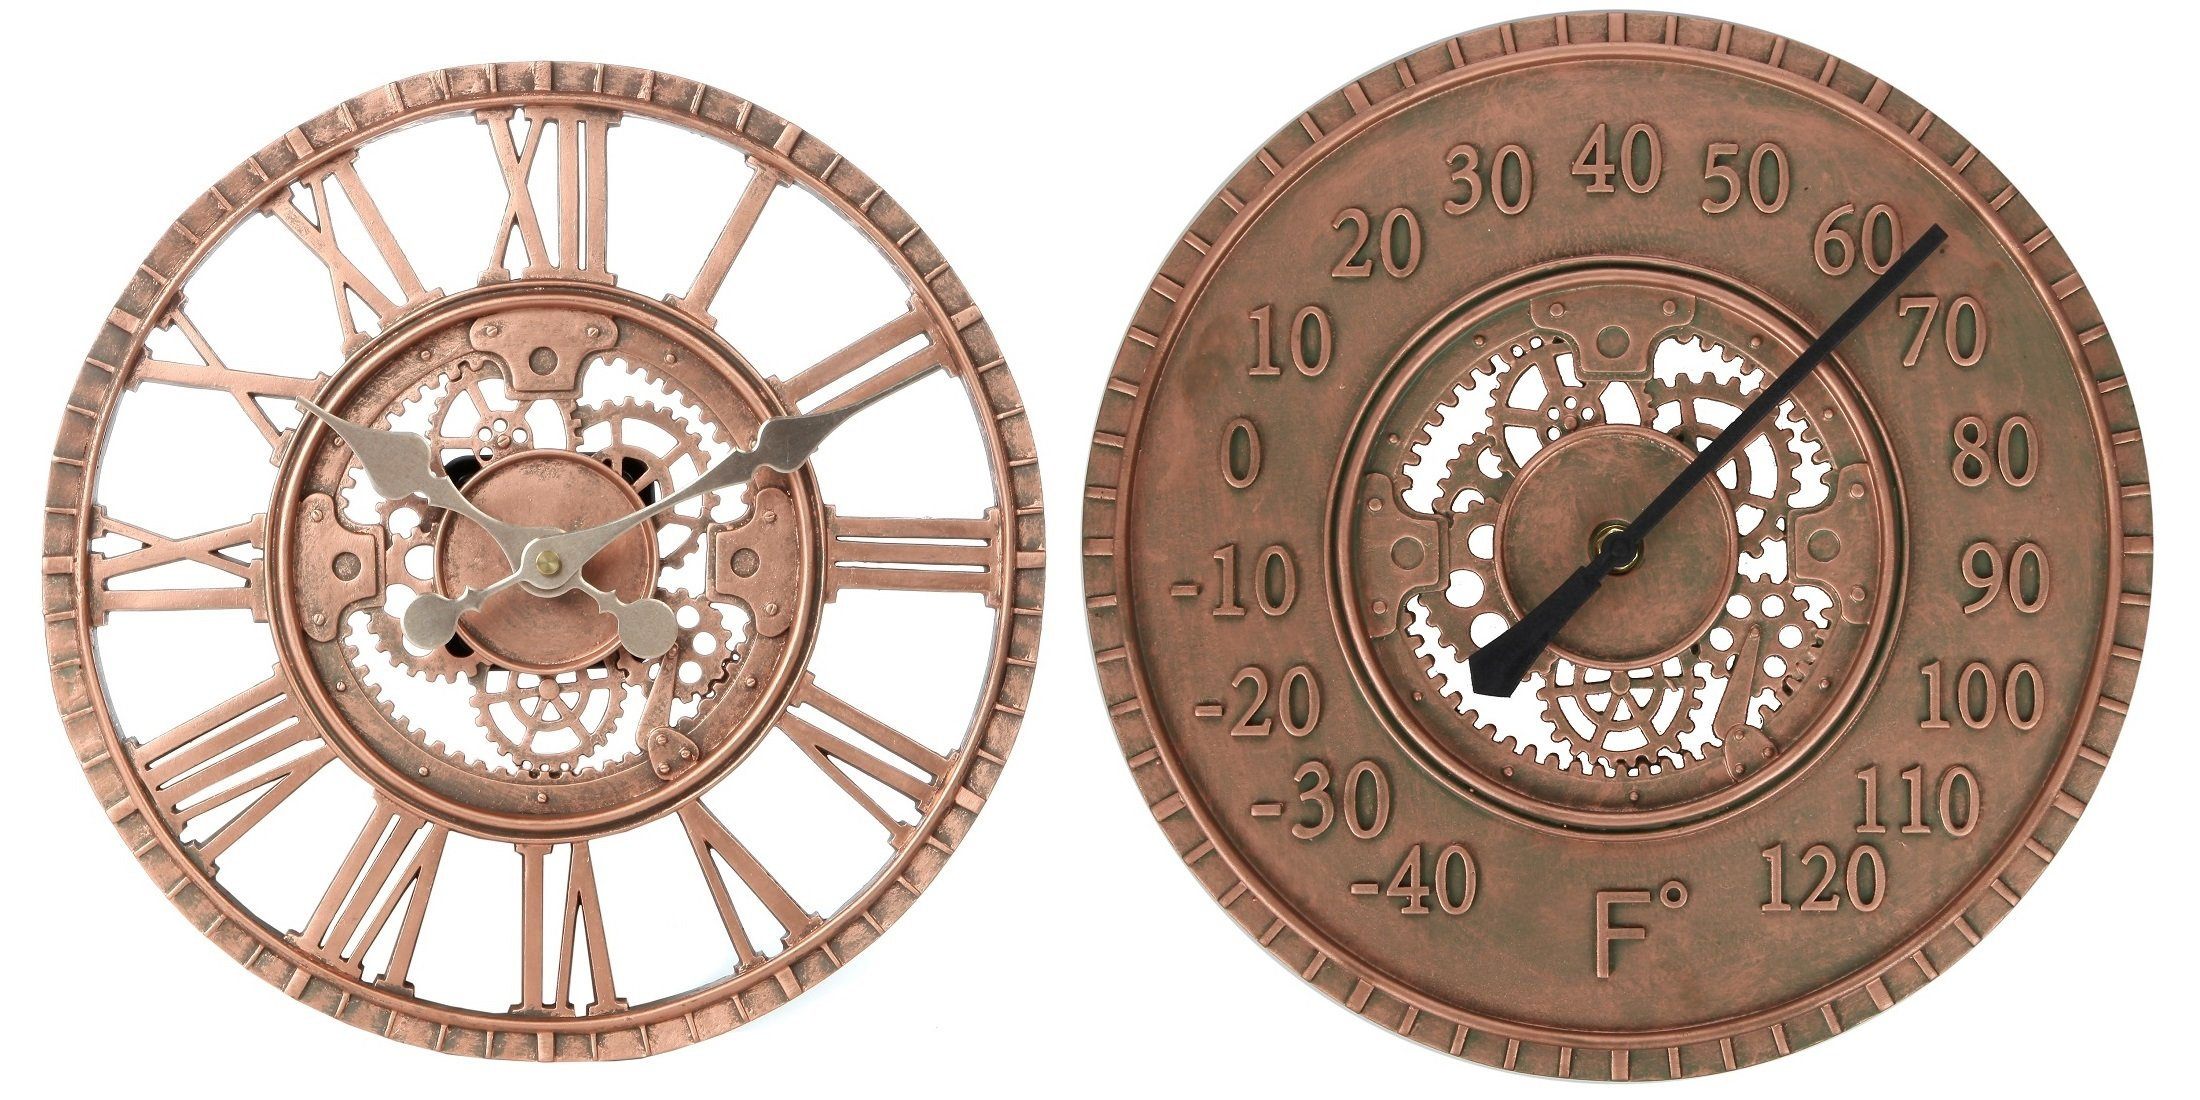 Lily's Home Hanging Wall Clock and Thermometer Set, Steampunk Gear and Cog Design with a Bronze Finish, Ideal for Indoor or Outdoor Use, Poly-Resin (12 Inches and 13 Inches Diameter)